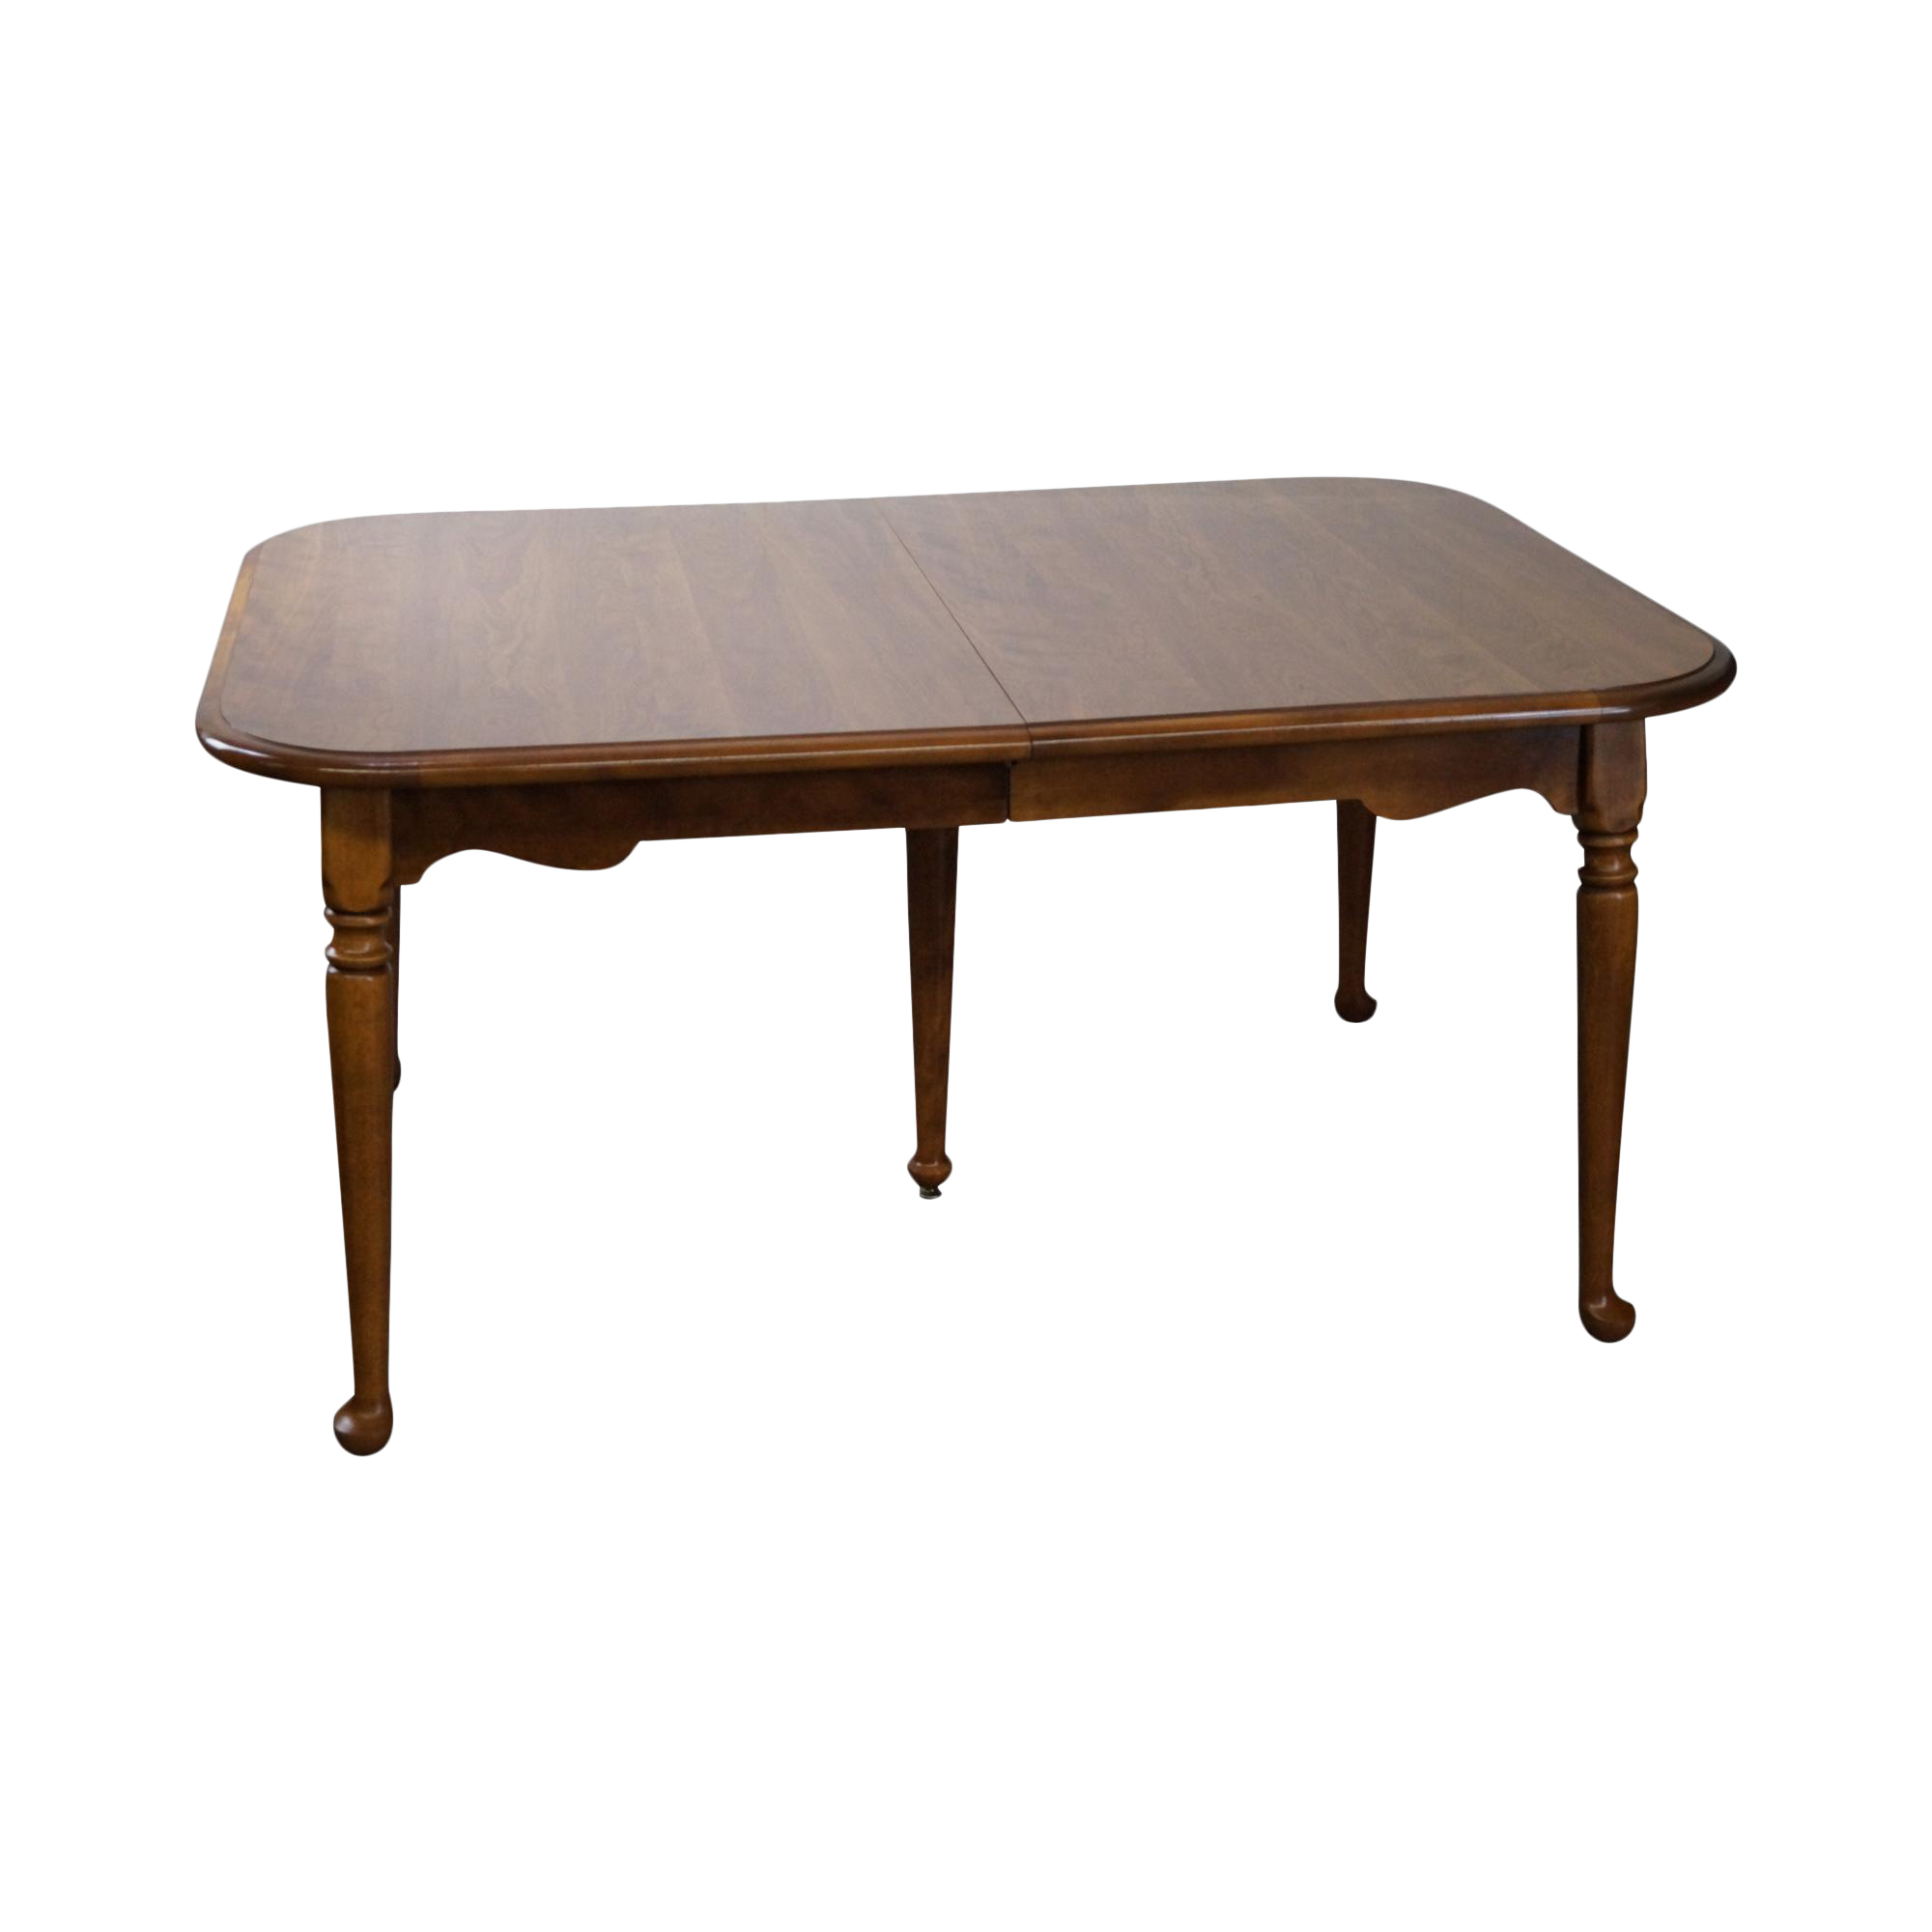 Ethan allen traditional maple dining table w 2 leaves for Maple dining table